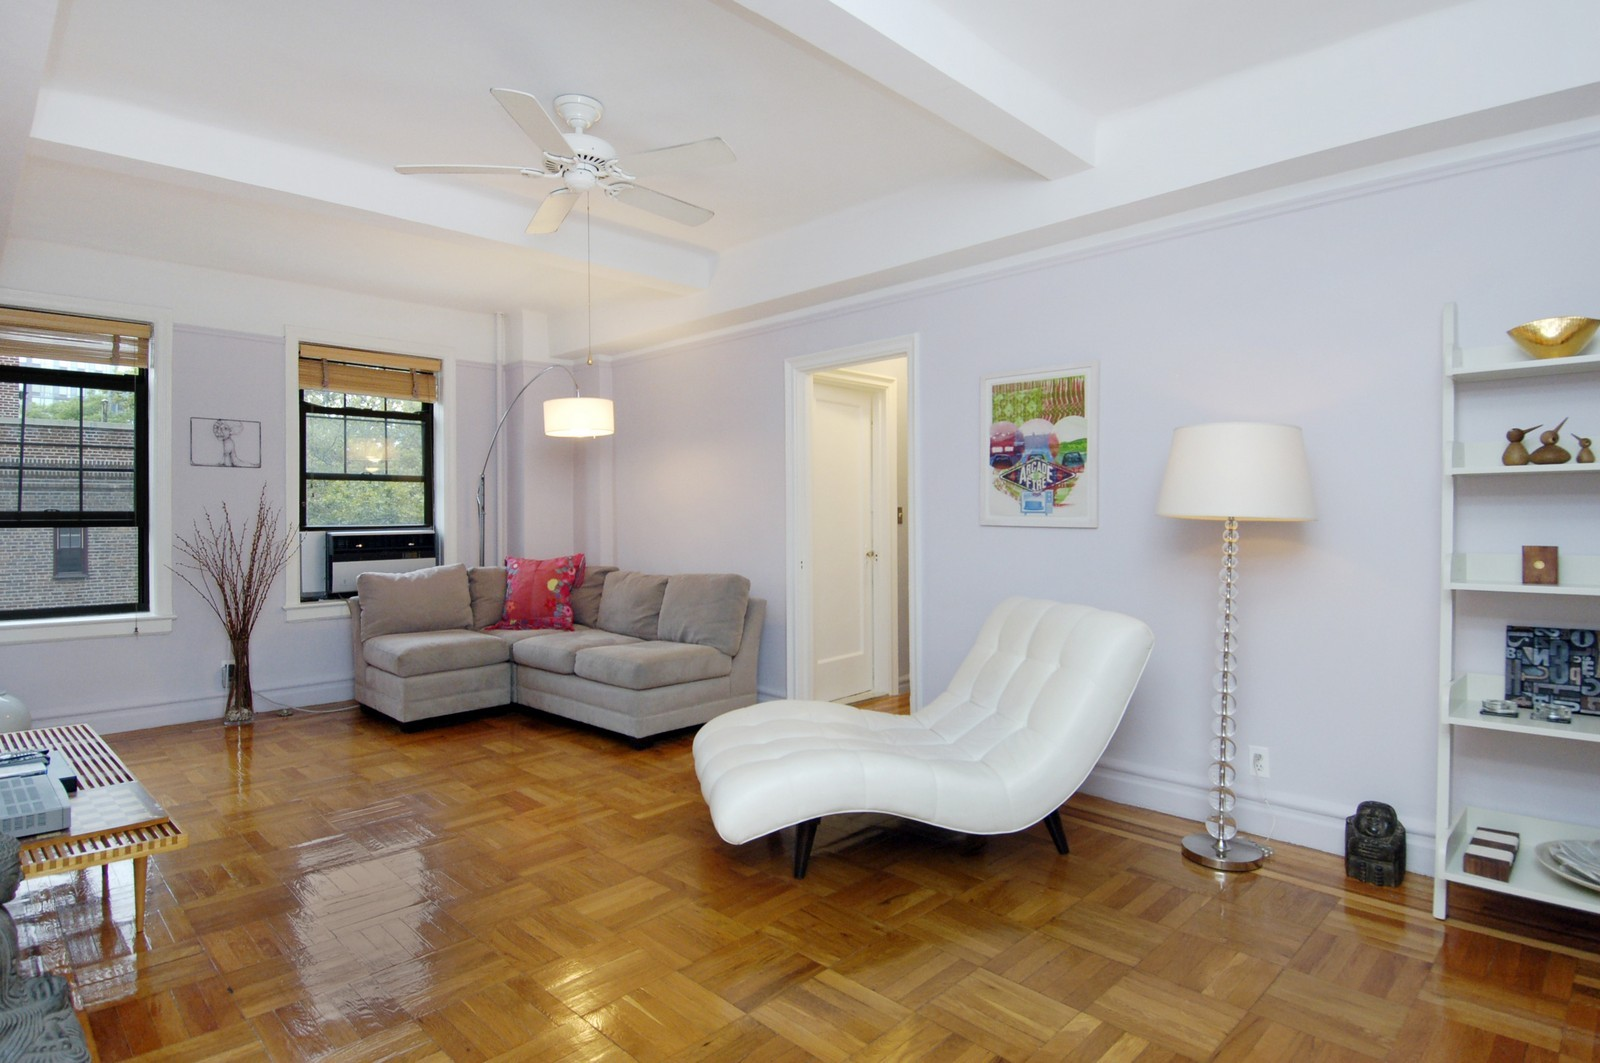 Real Estate Photography - 141 E 3, Apt 4G, New York, NY, 10009 - Living Room